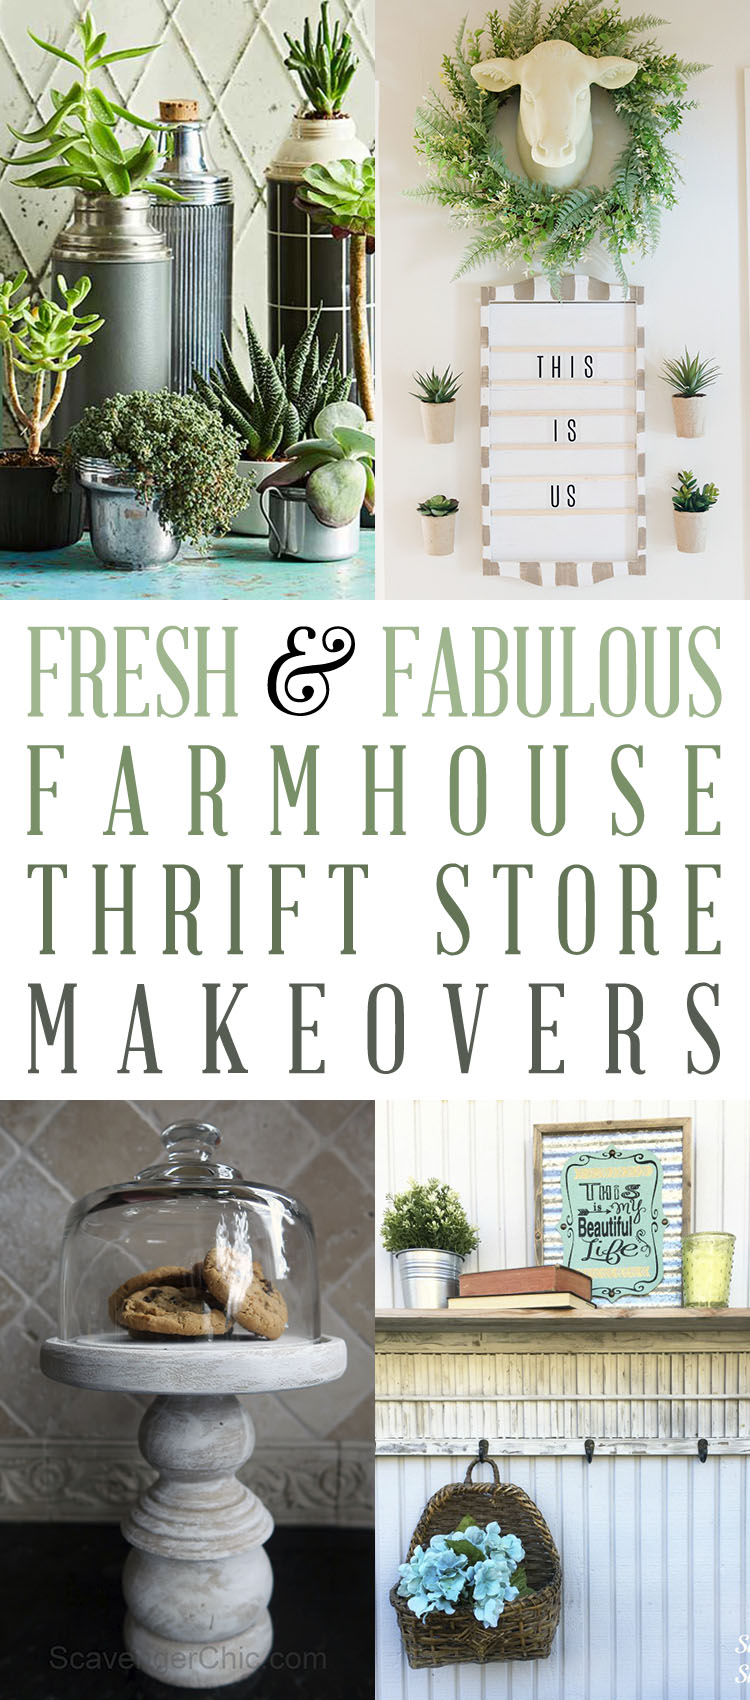 Try out these farmhouse thrift store makeovers to update your space today.